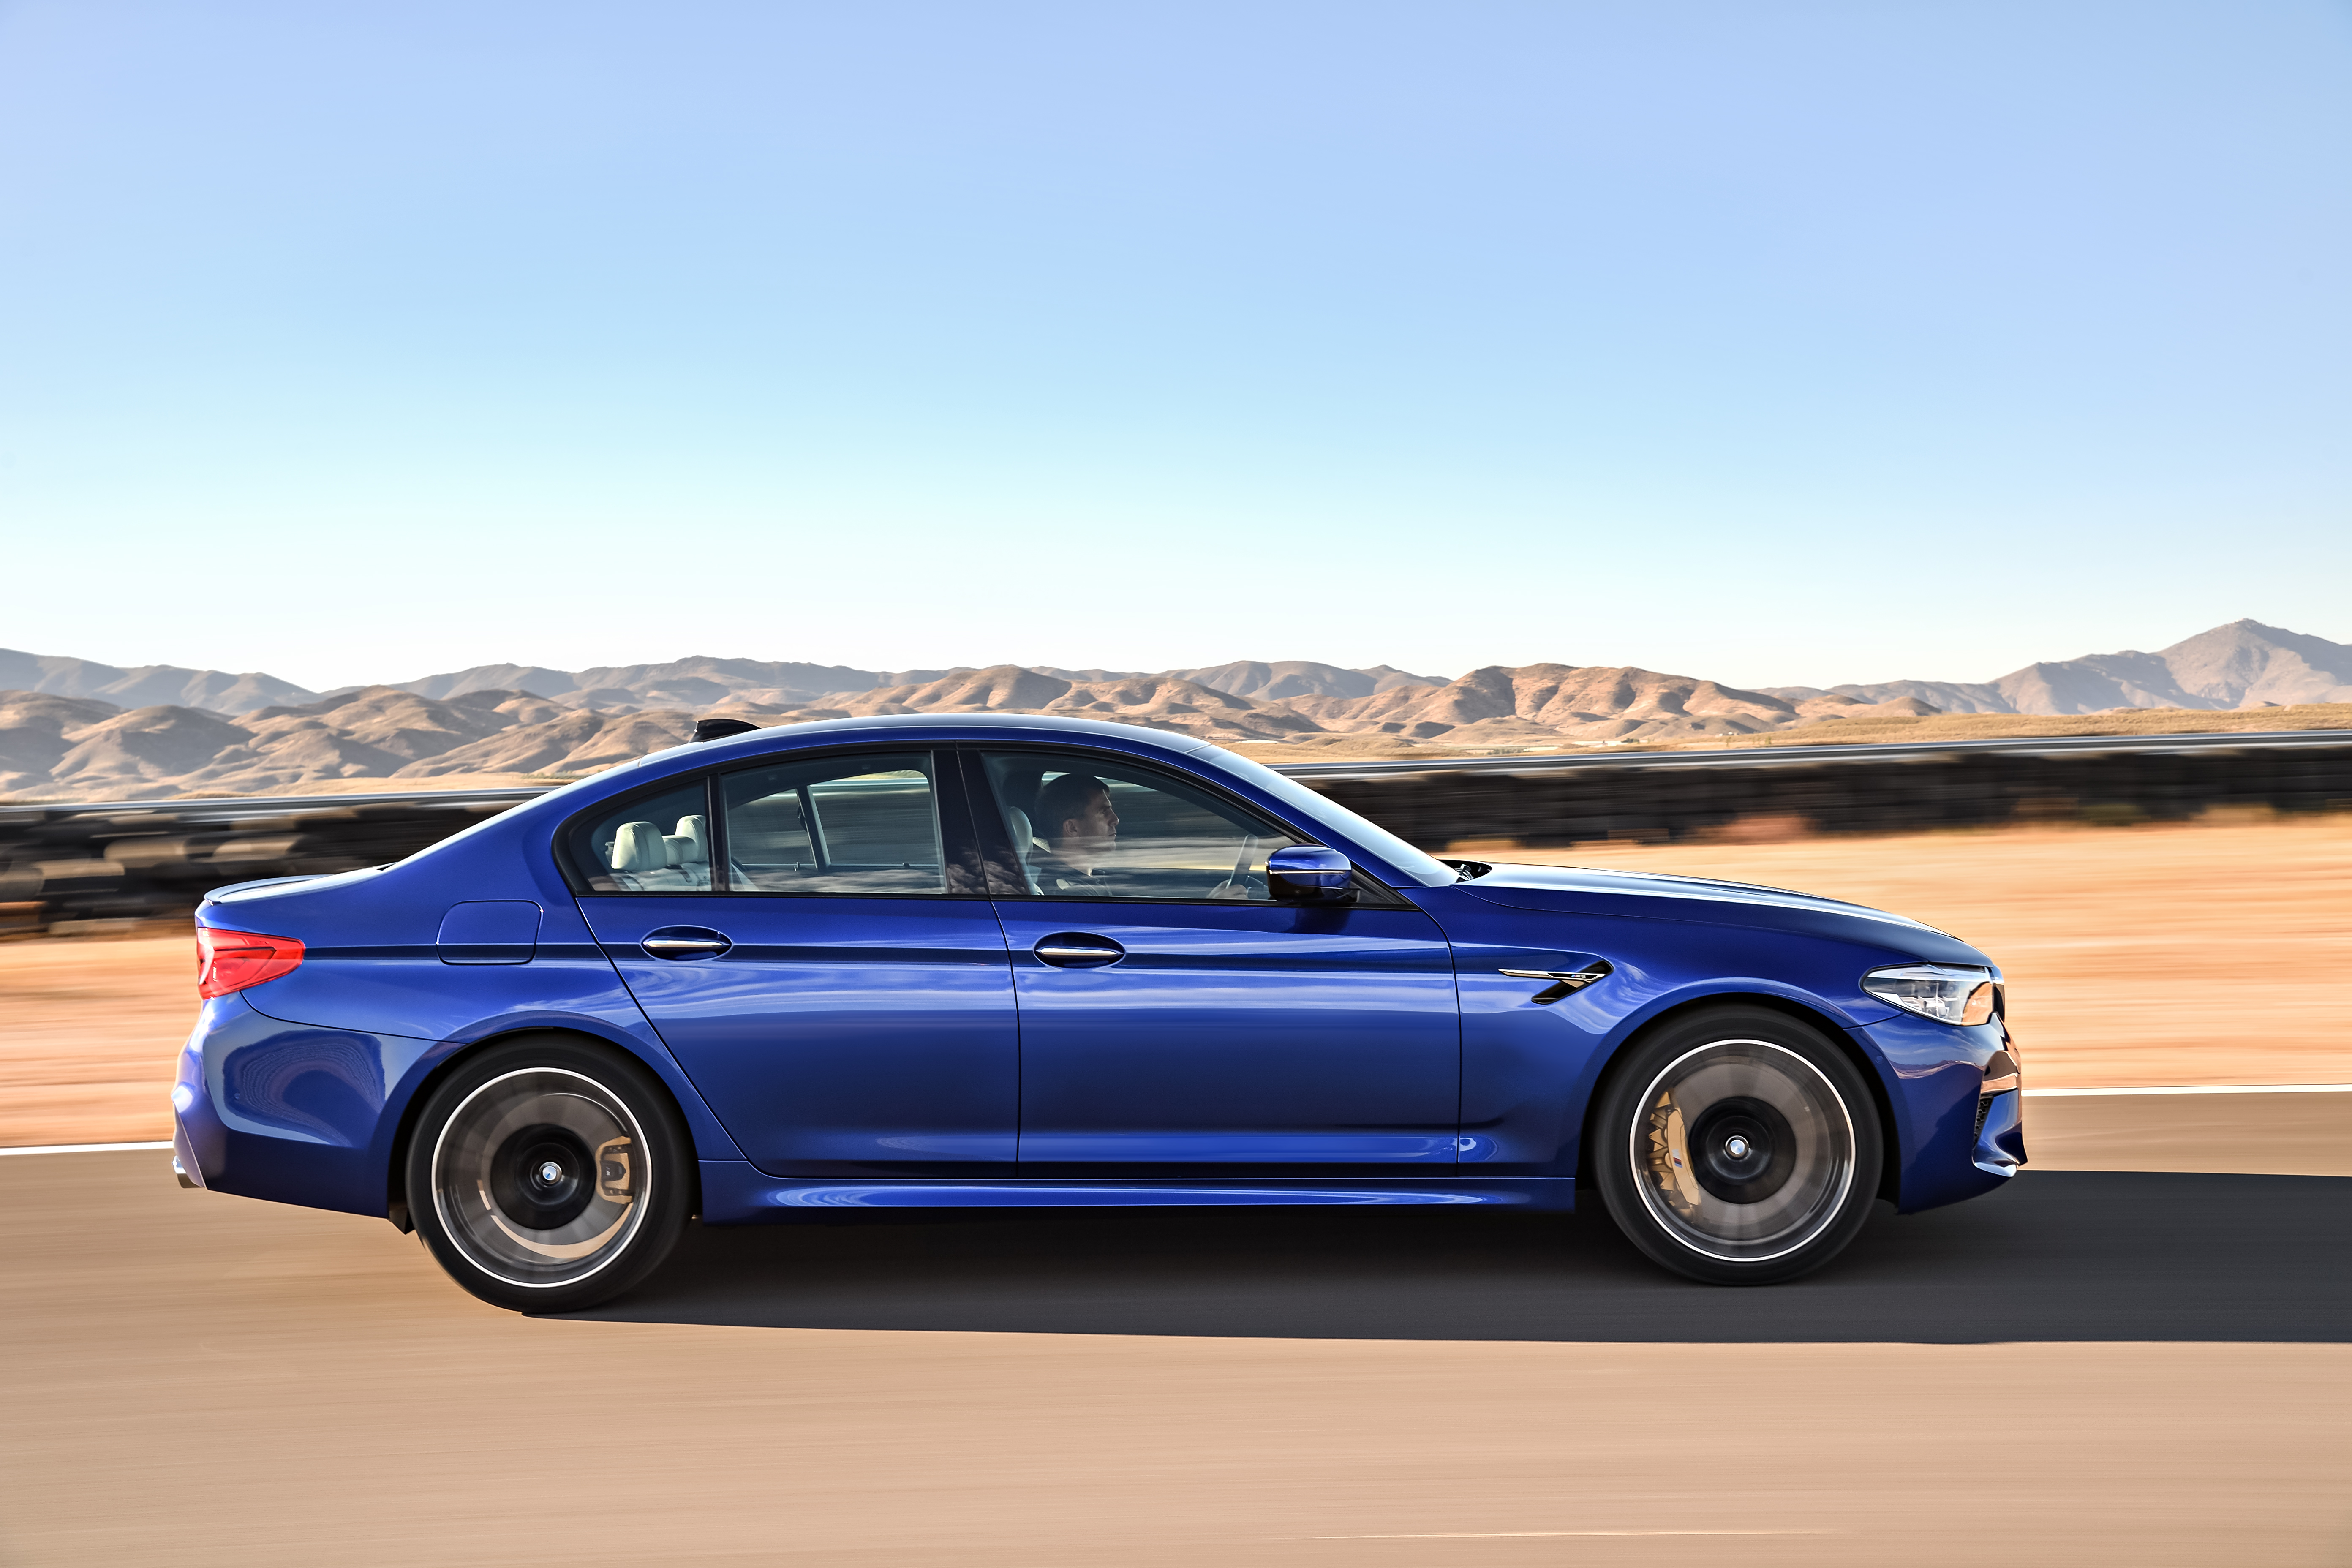 The new BMW M5!